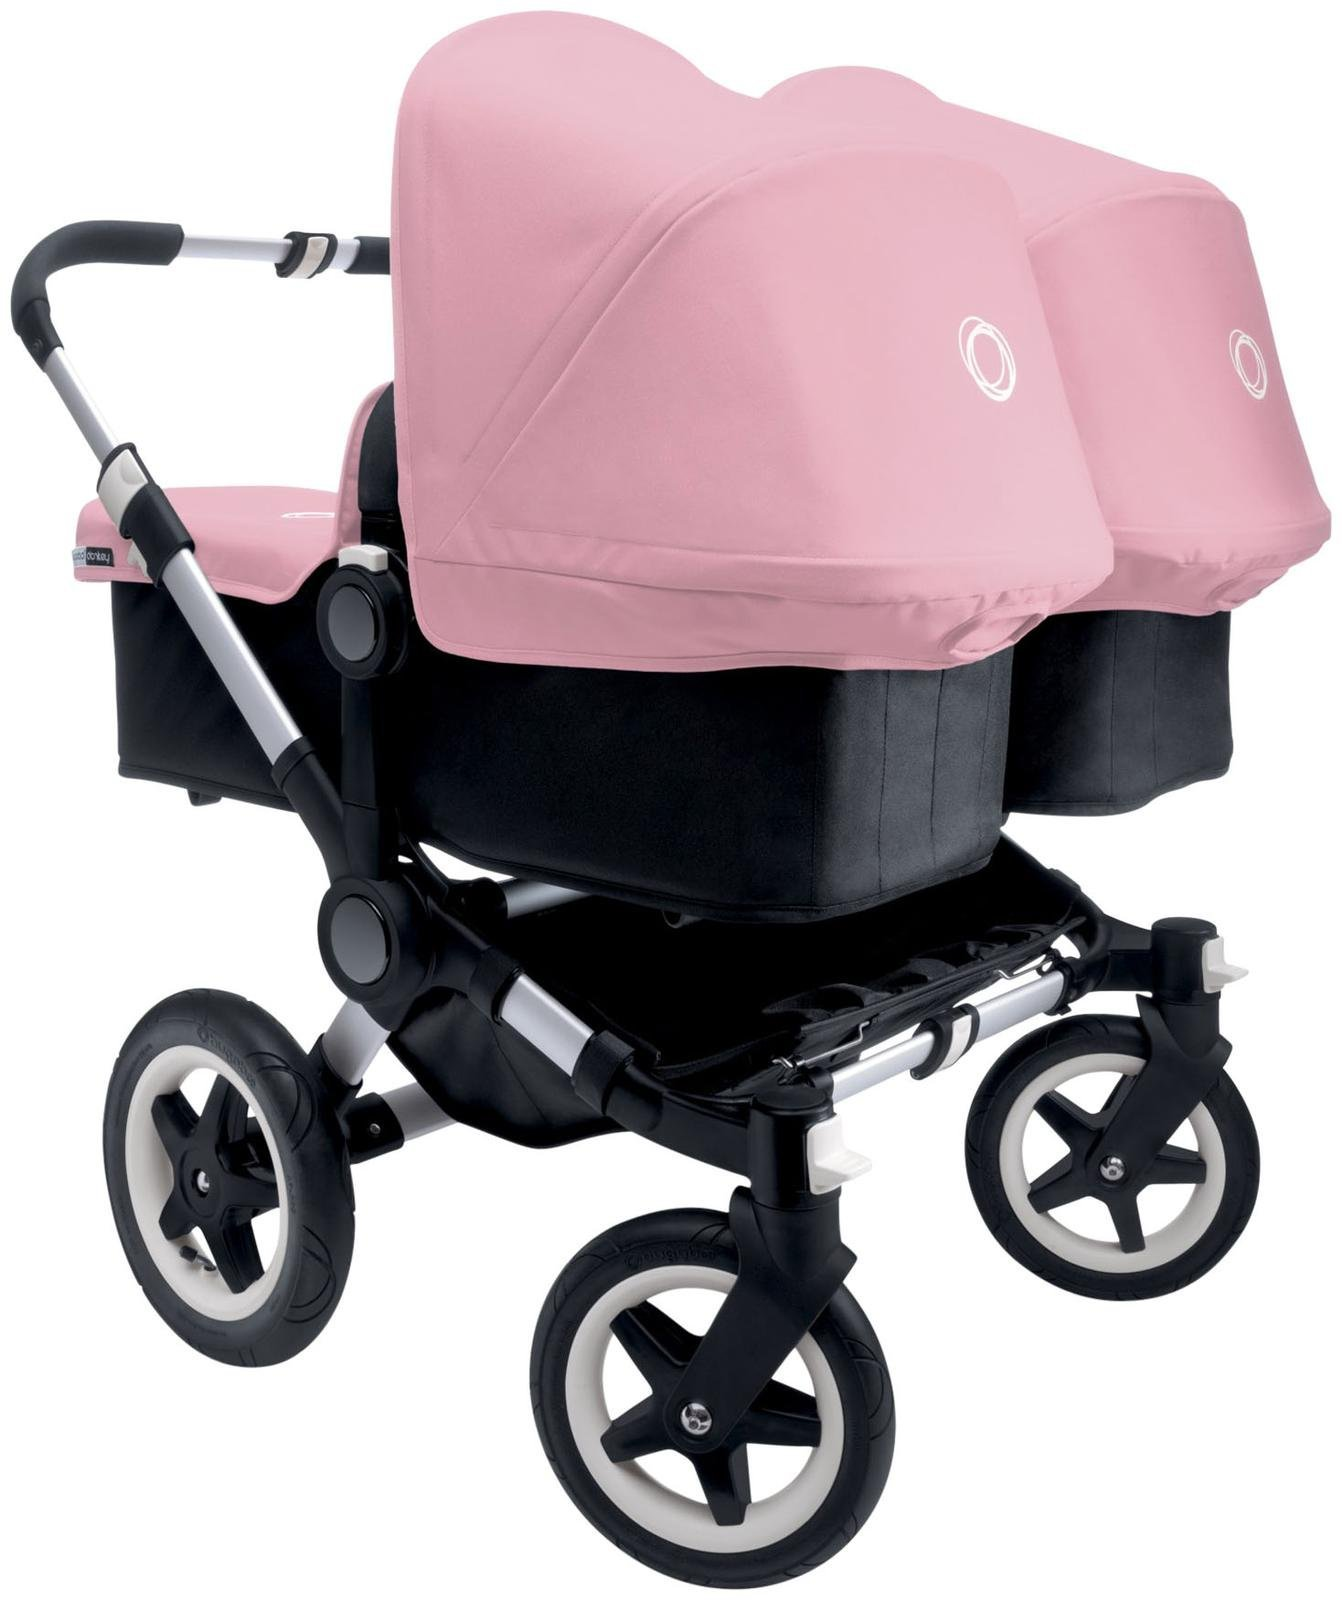 Bugaboo Donkey Complete Twin Stroller - Soft Pink - Aluminum by BUGABOO